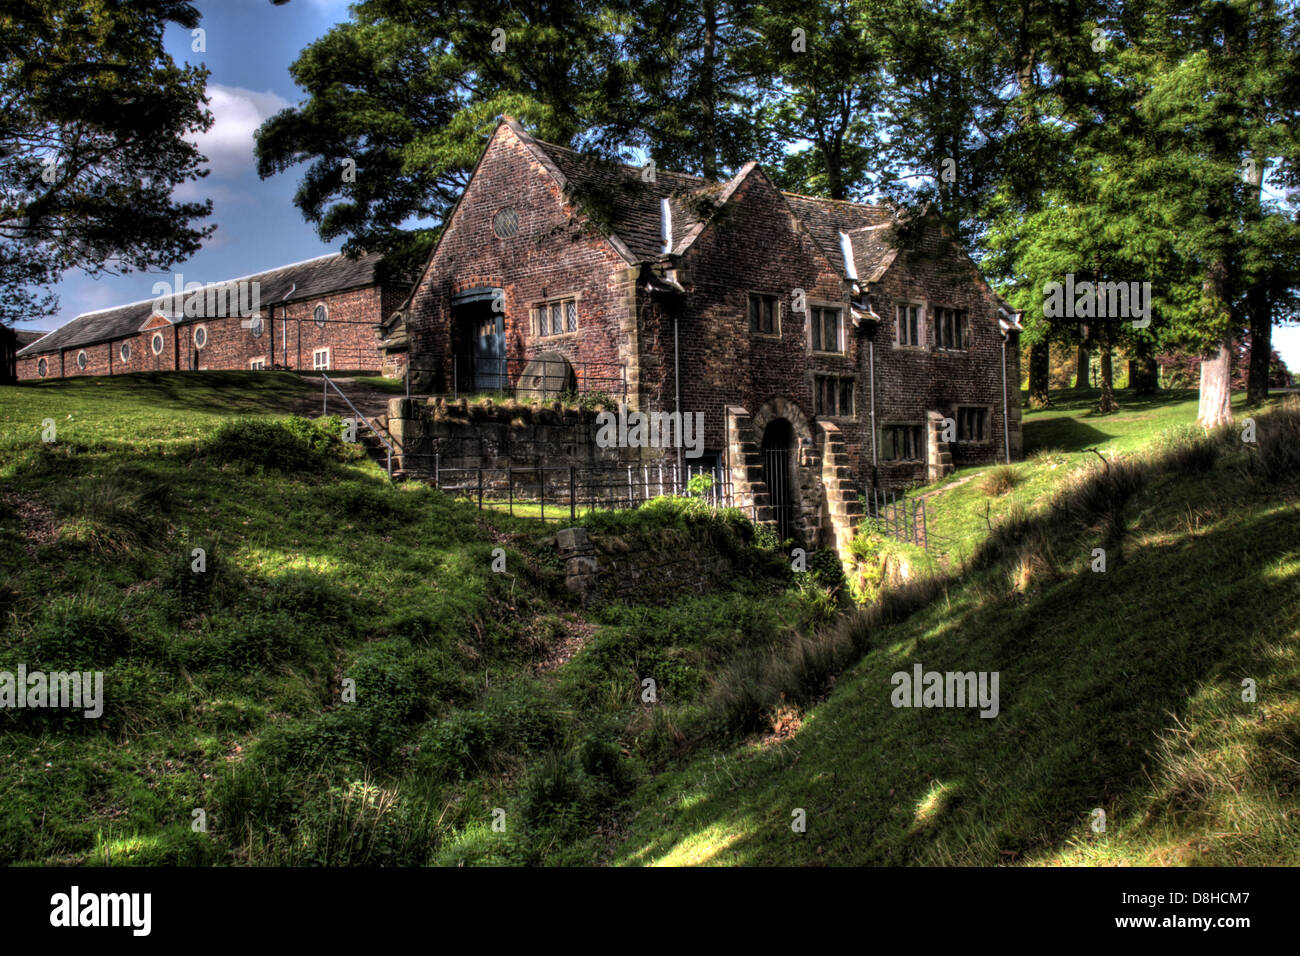 The Old Mill Dunham Massey NT Cheshire England WA14 4SJ - Stock Image